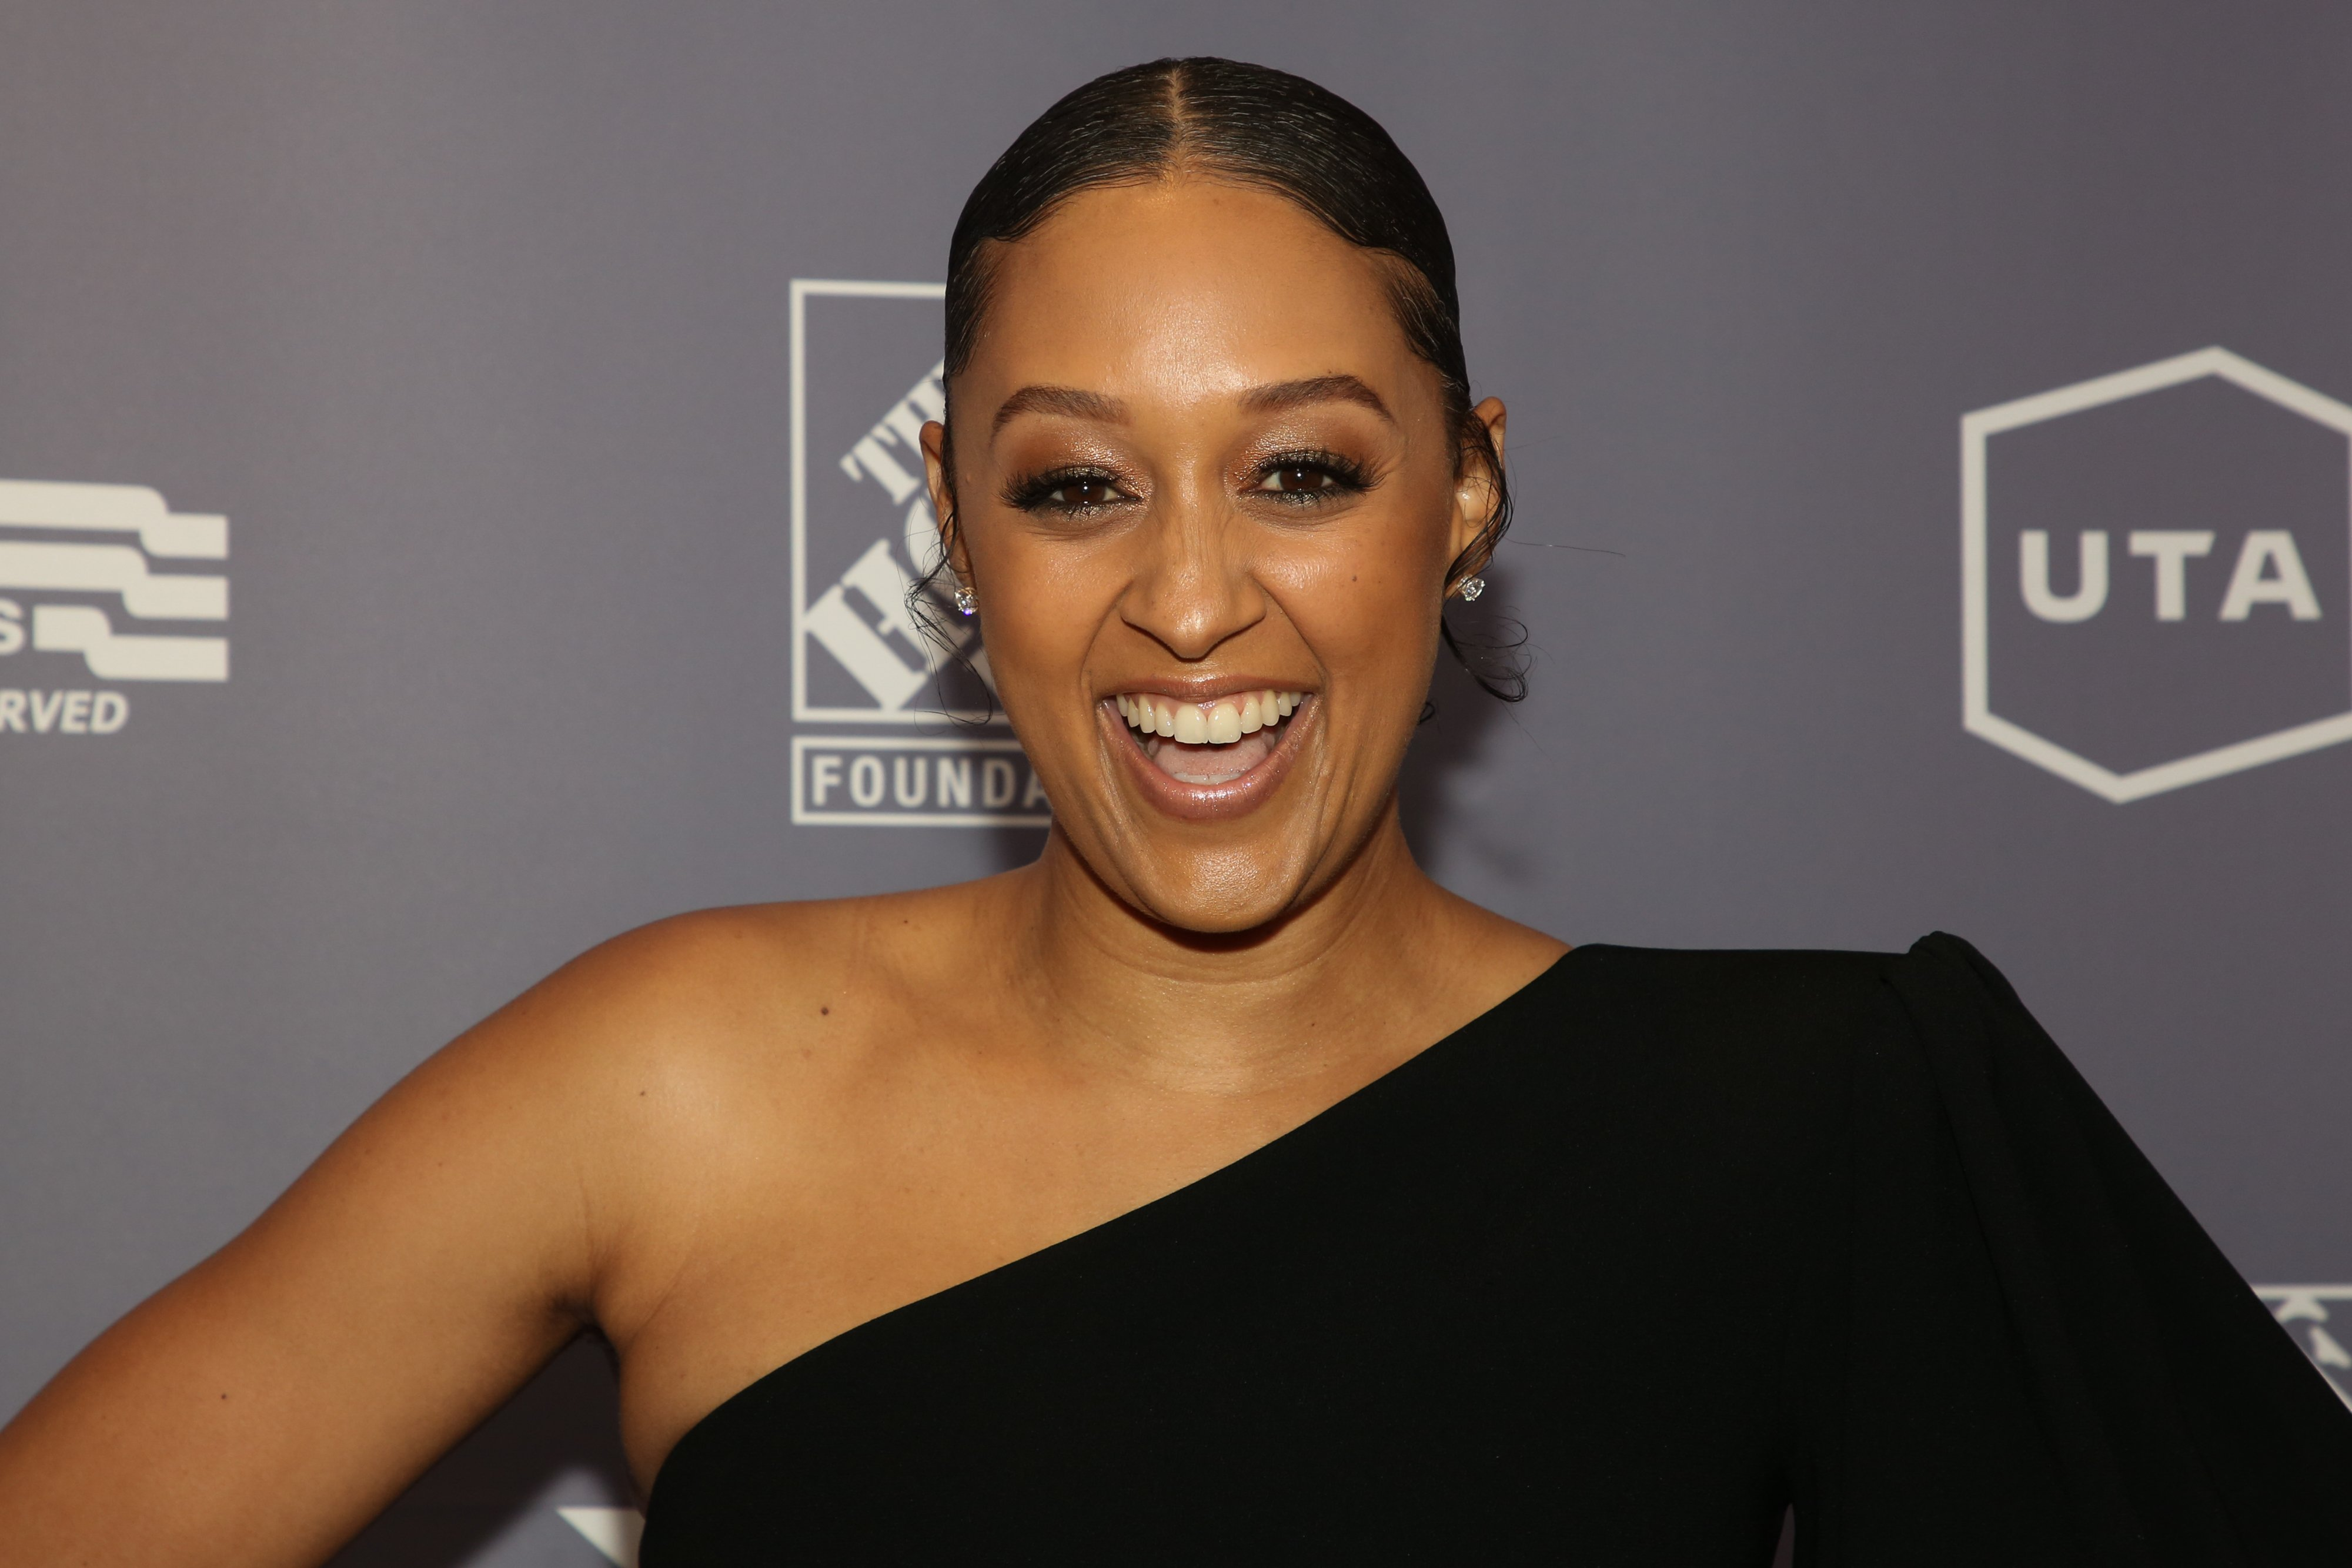 Tia Mowry attends the 2019 U.S. Vets Salute Gala at The Beverly Hilton Hotel on November 05, 2019 in Beverly Hills, California. | Source: Getty Images